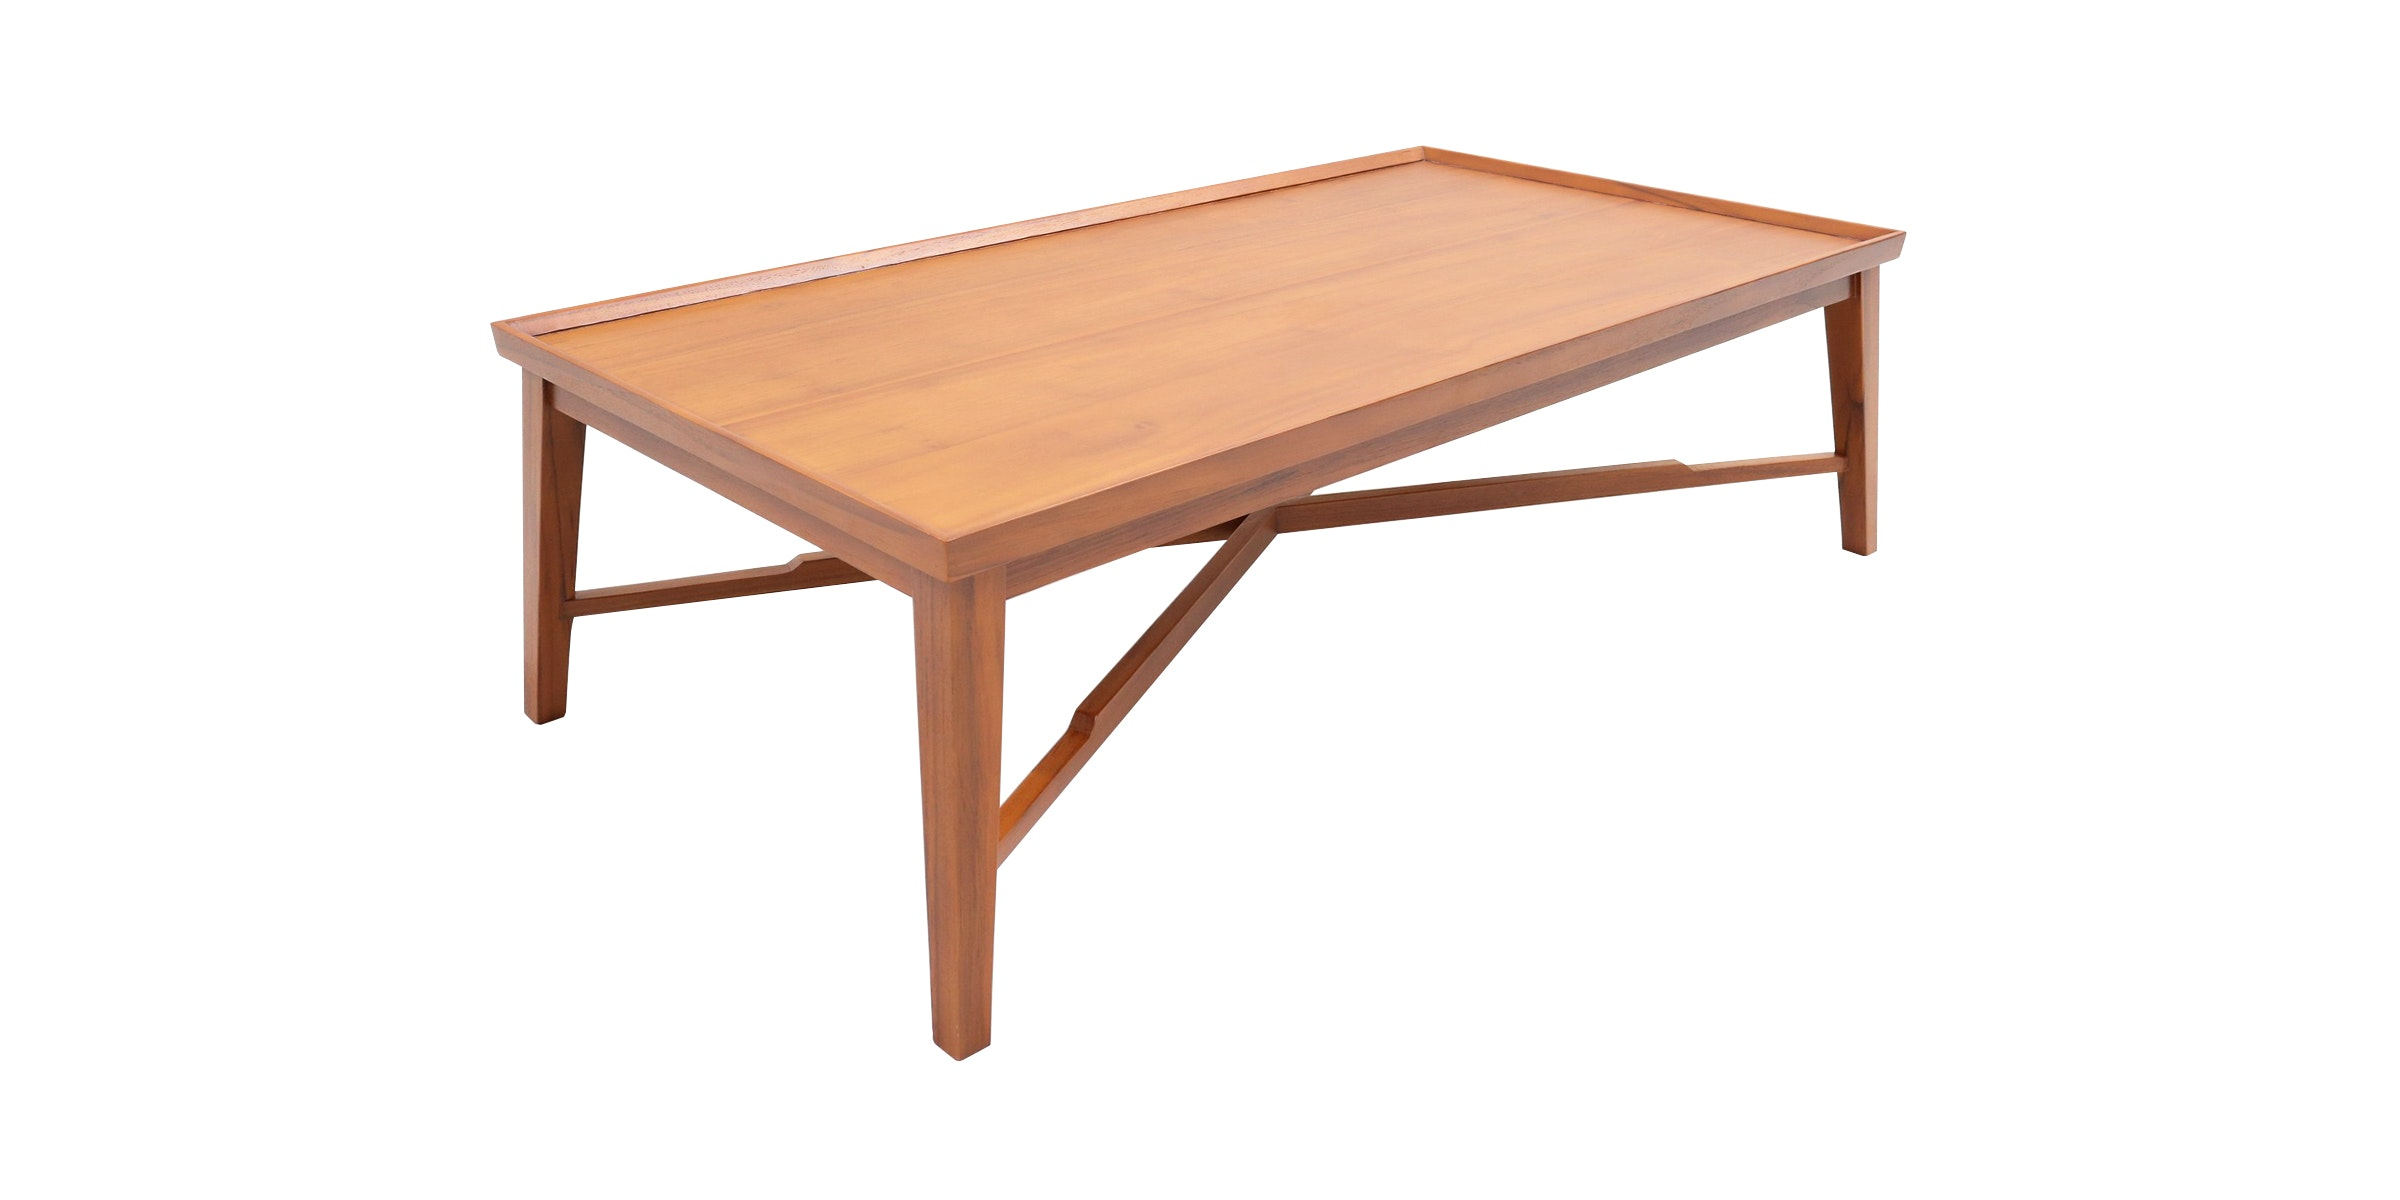 Kota Jati Coffee Table Freya